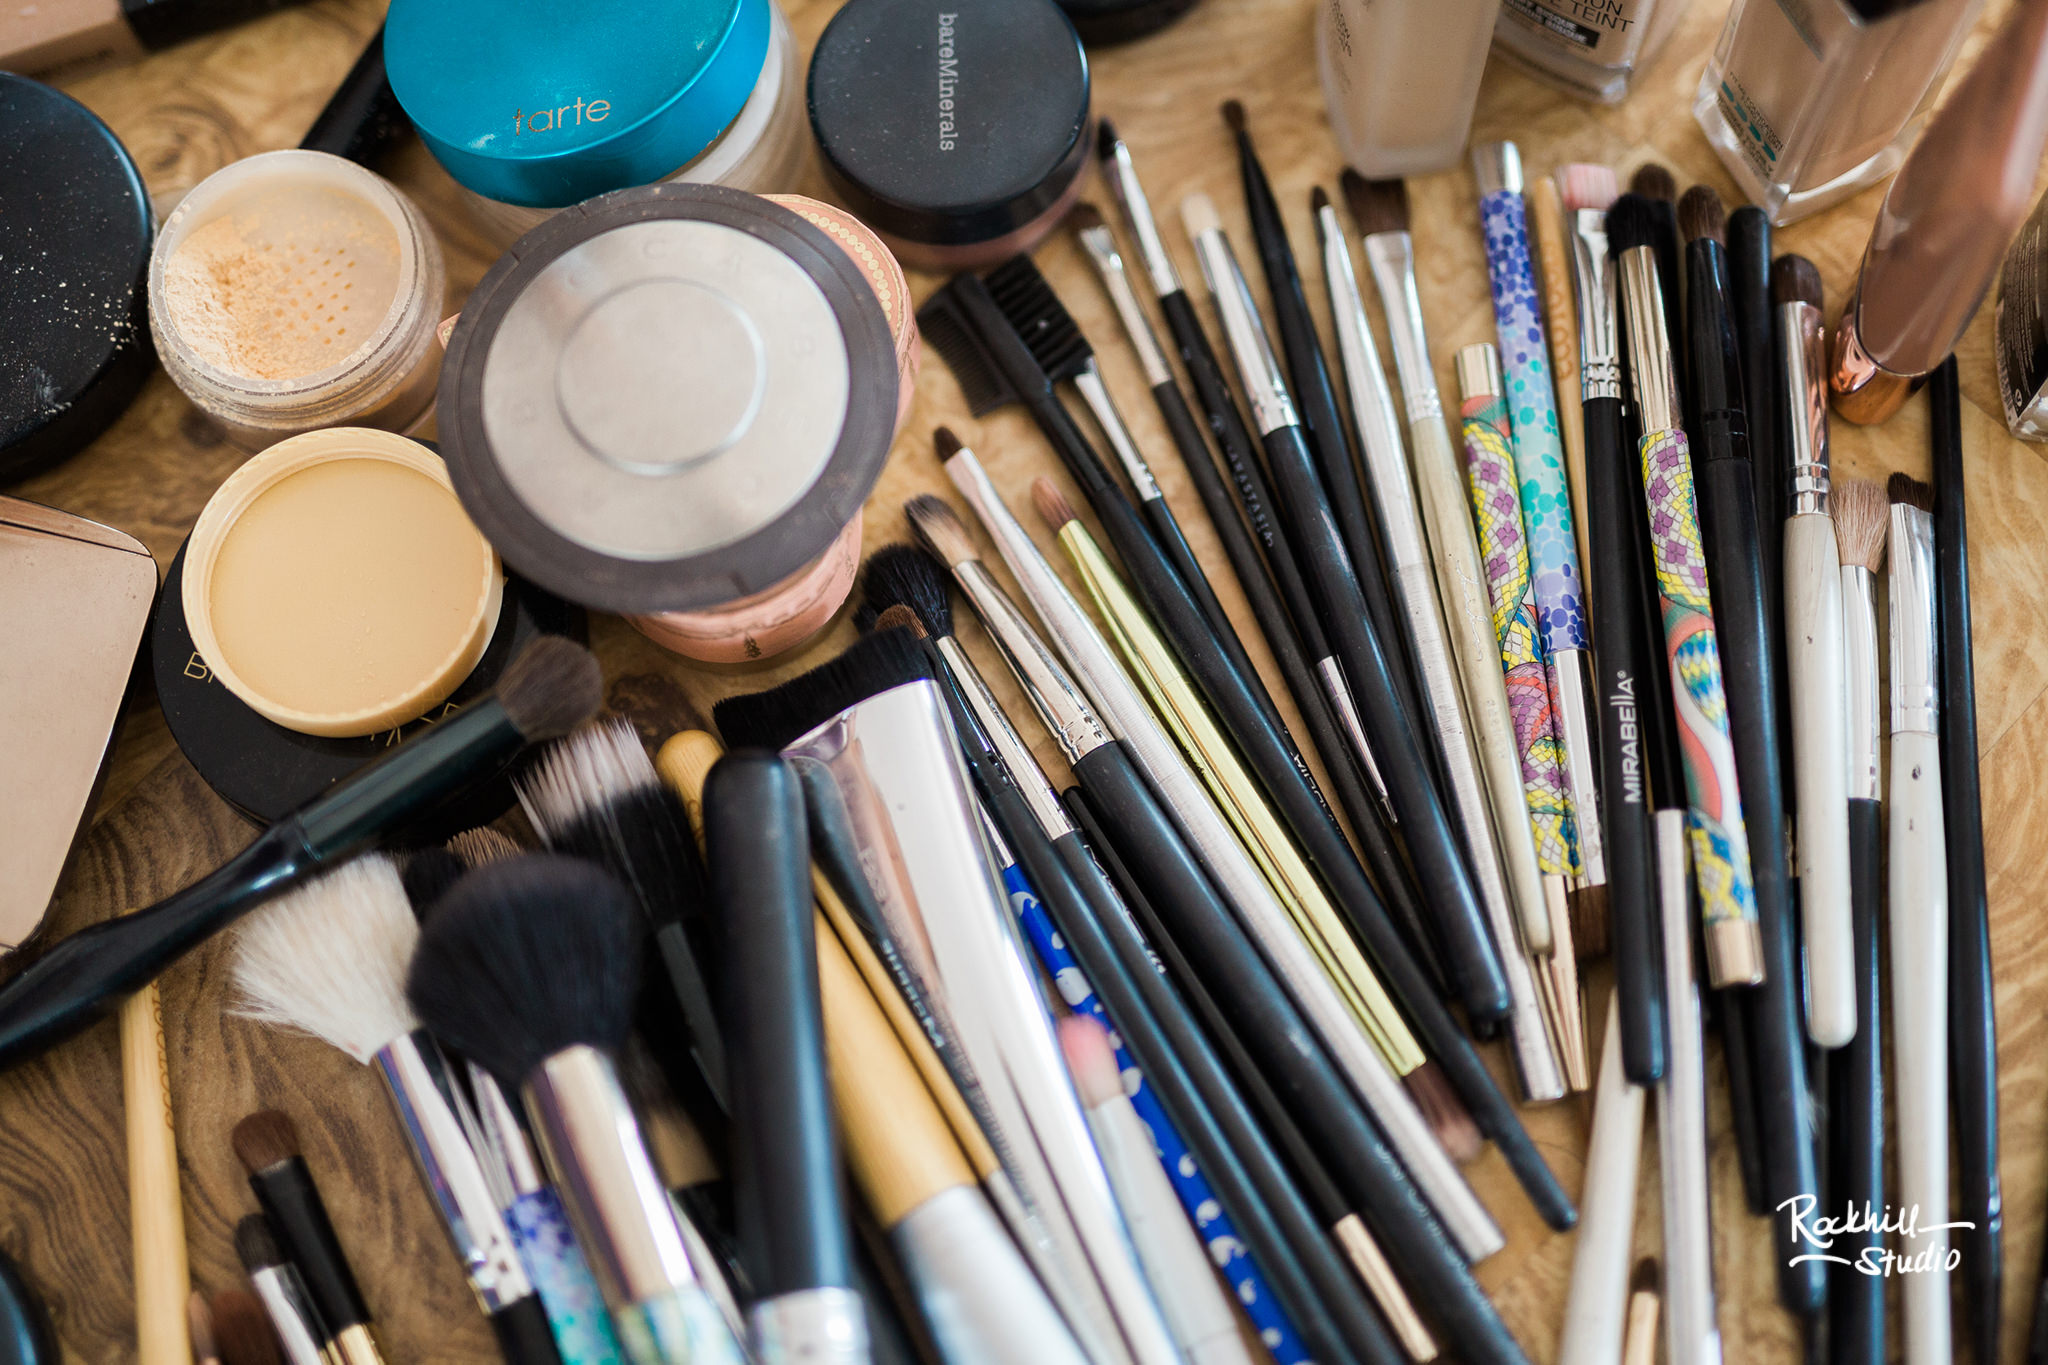 Northport Getting ready detail, makeup brushes,Traverse City wedding photographer Rockhill Studio